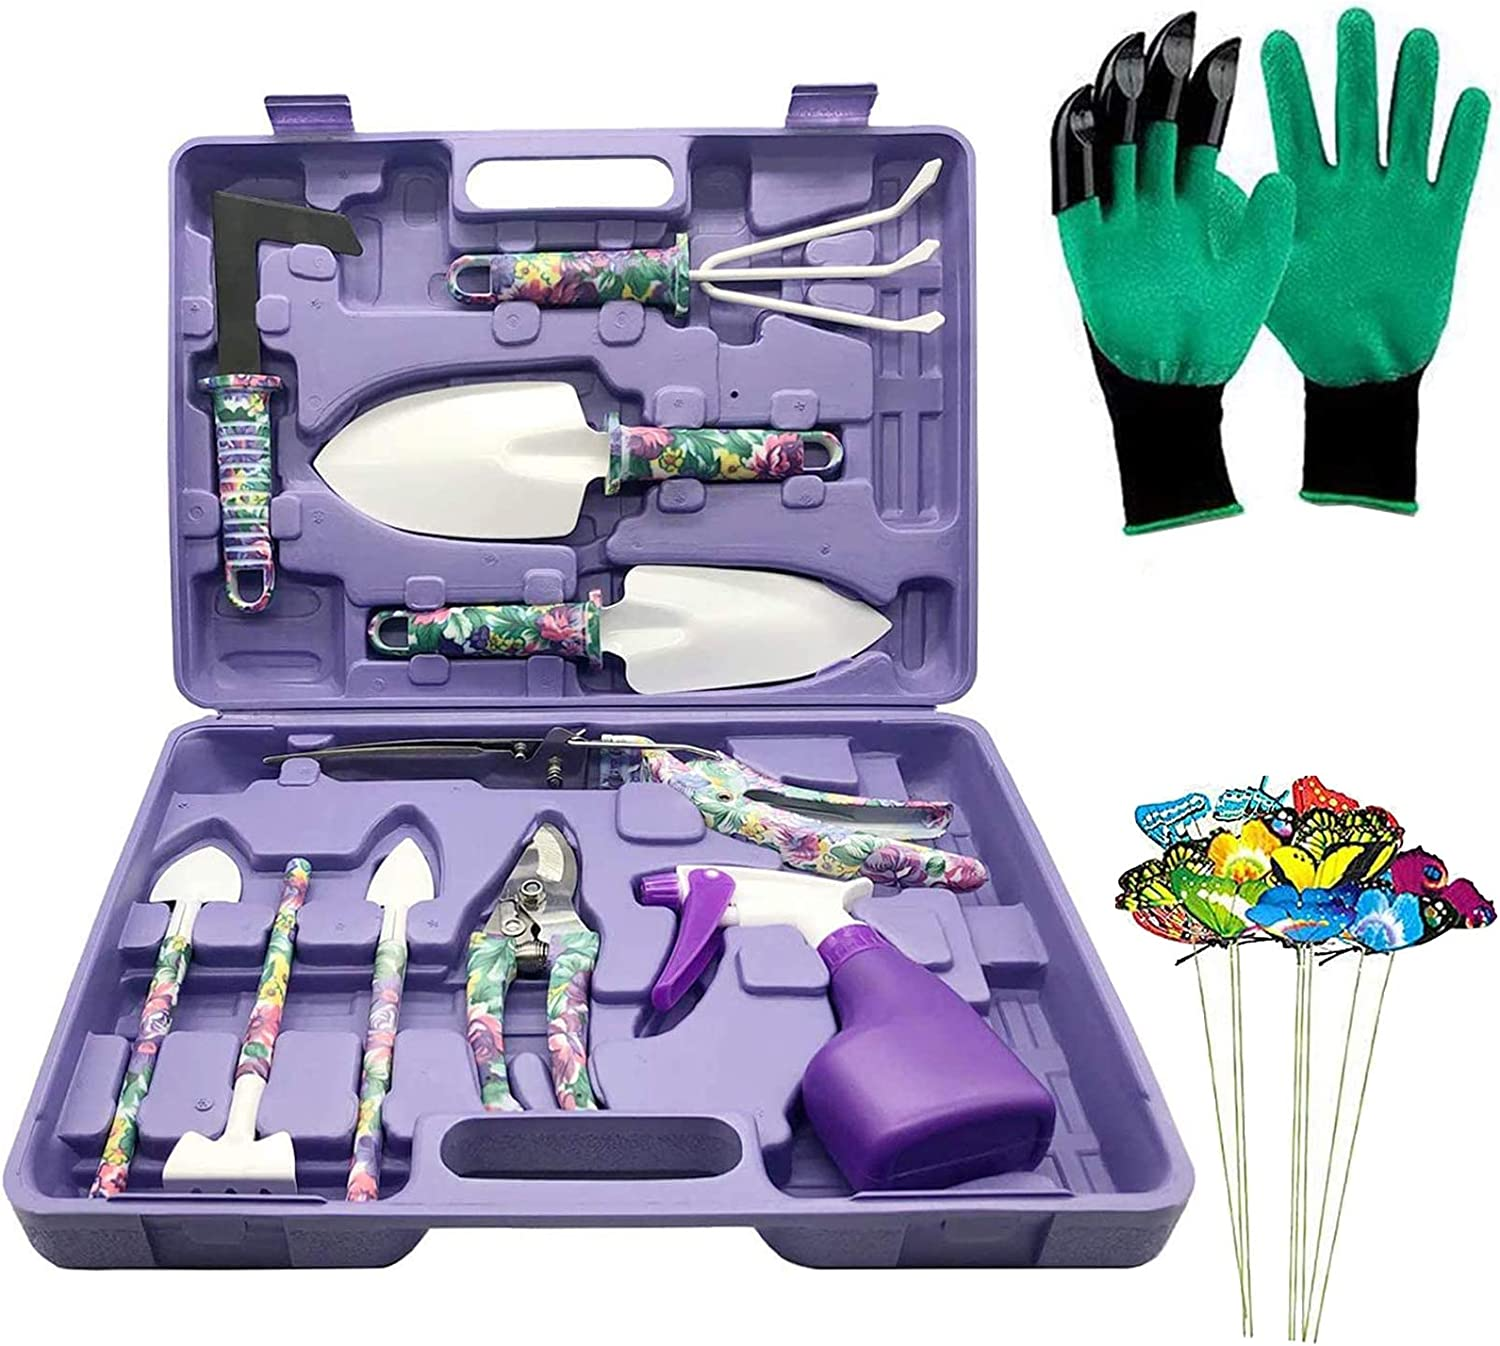 DM Gardening Tool Set, 35PCS Heavy Duty Aluminum Garden Tools Set for Women with Carrying Case, Ergonomic Handle Shovels, Rakes, Pruning Shears, Gardening Tools for Men(Purple Floral)